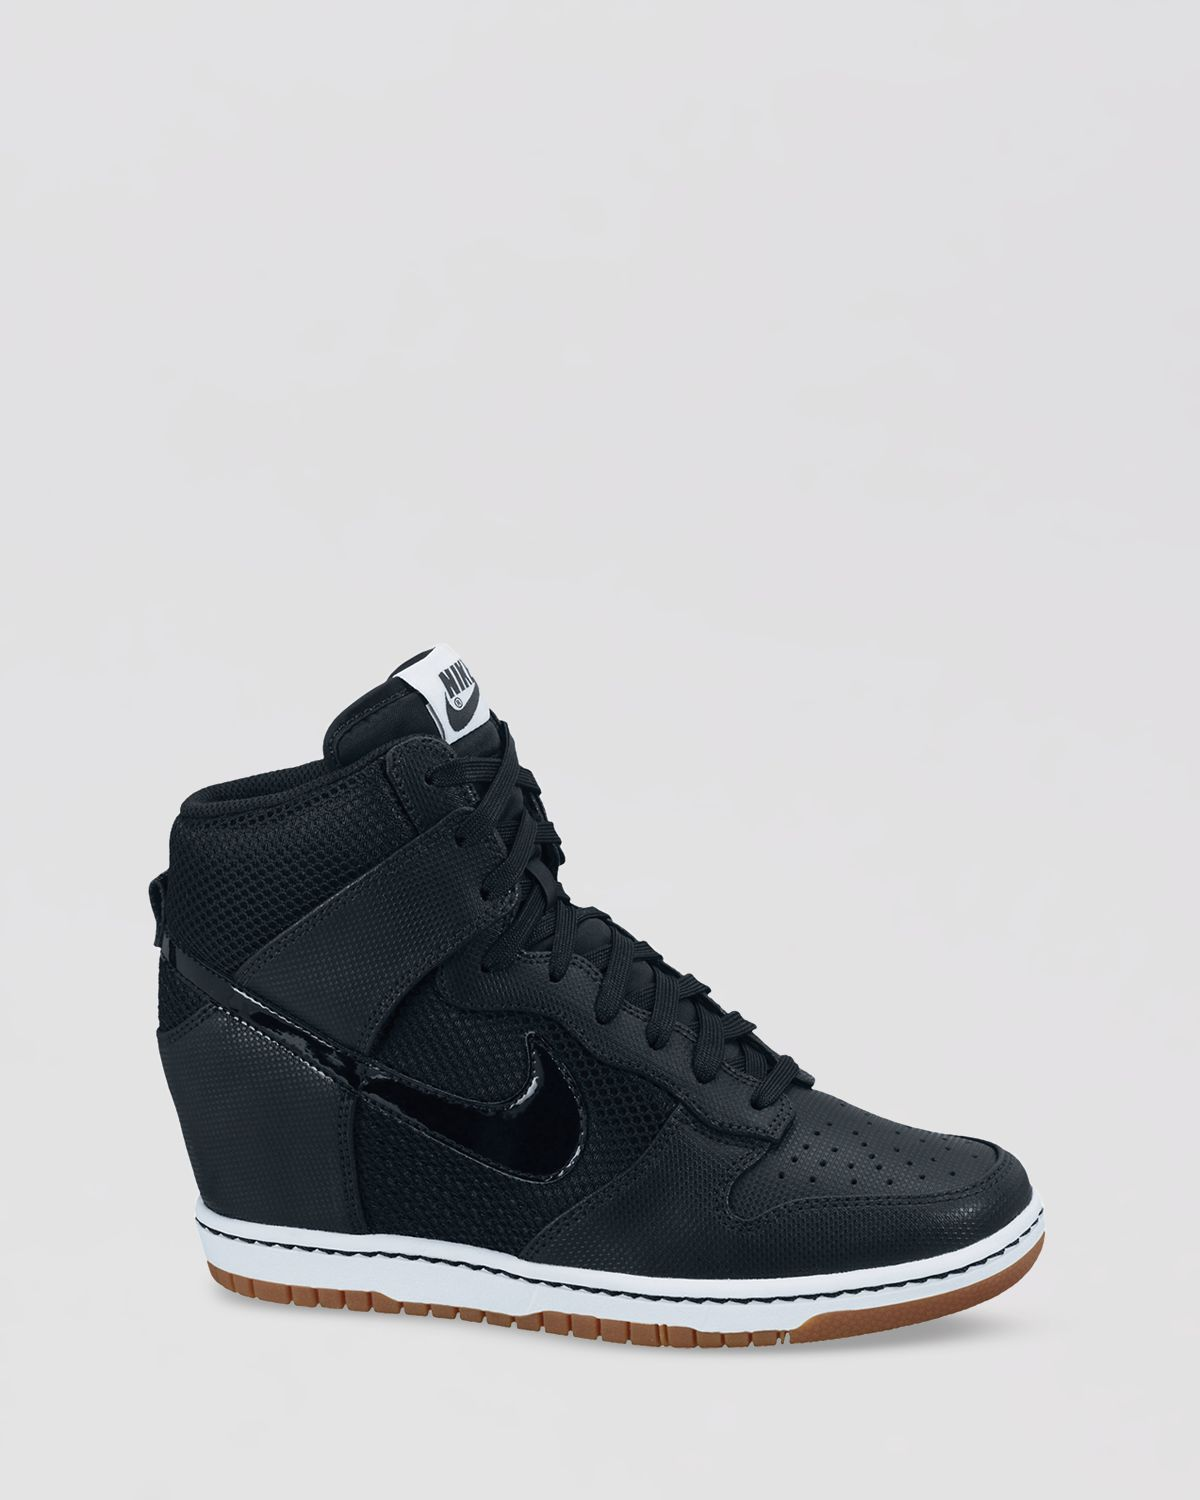 Creative Best 20 Nike Wedge Sneakers Ideas On Pinterest  Wedge Sneakers High